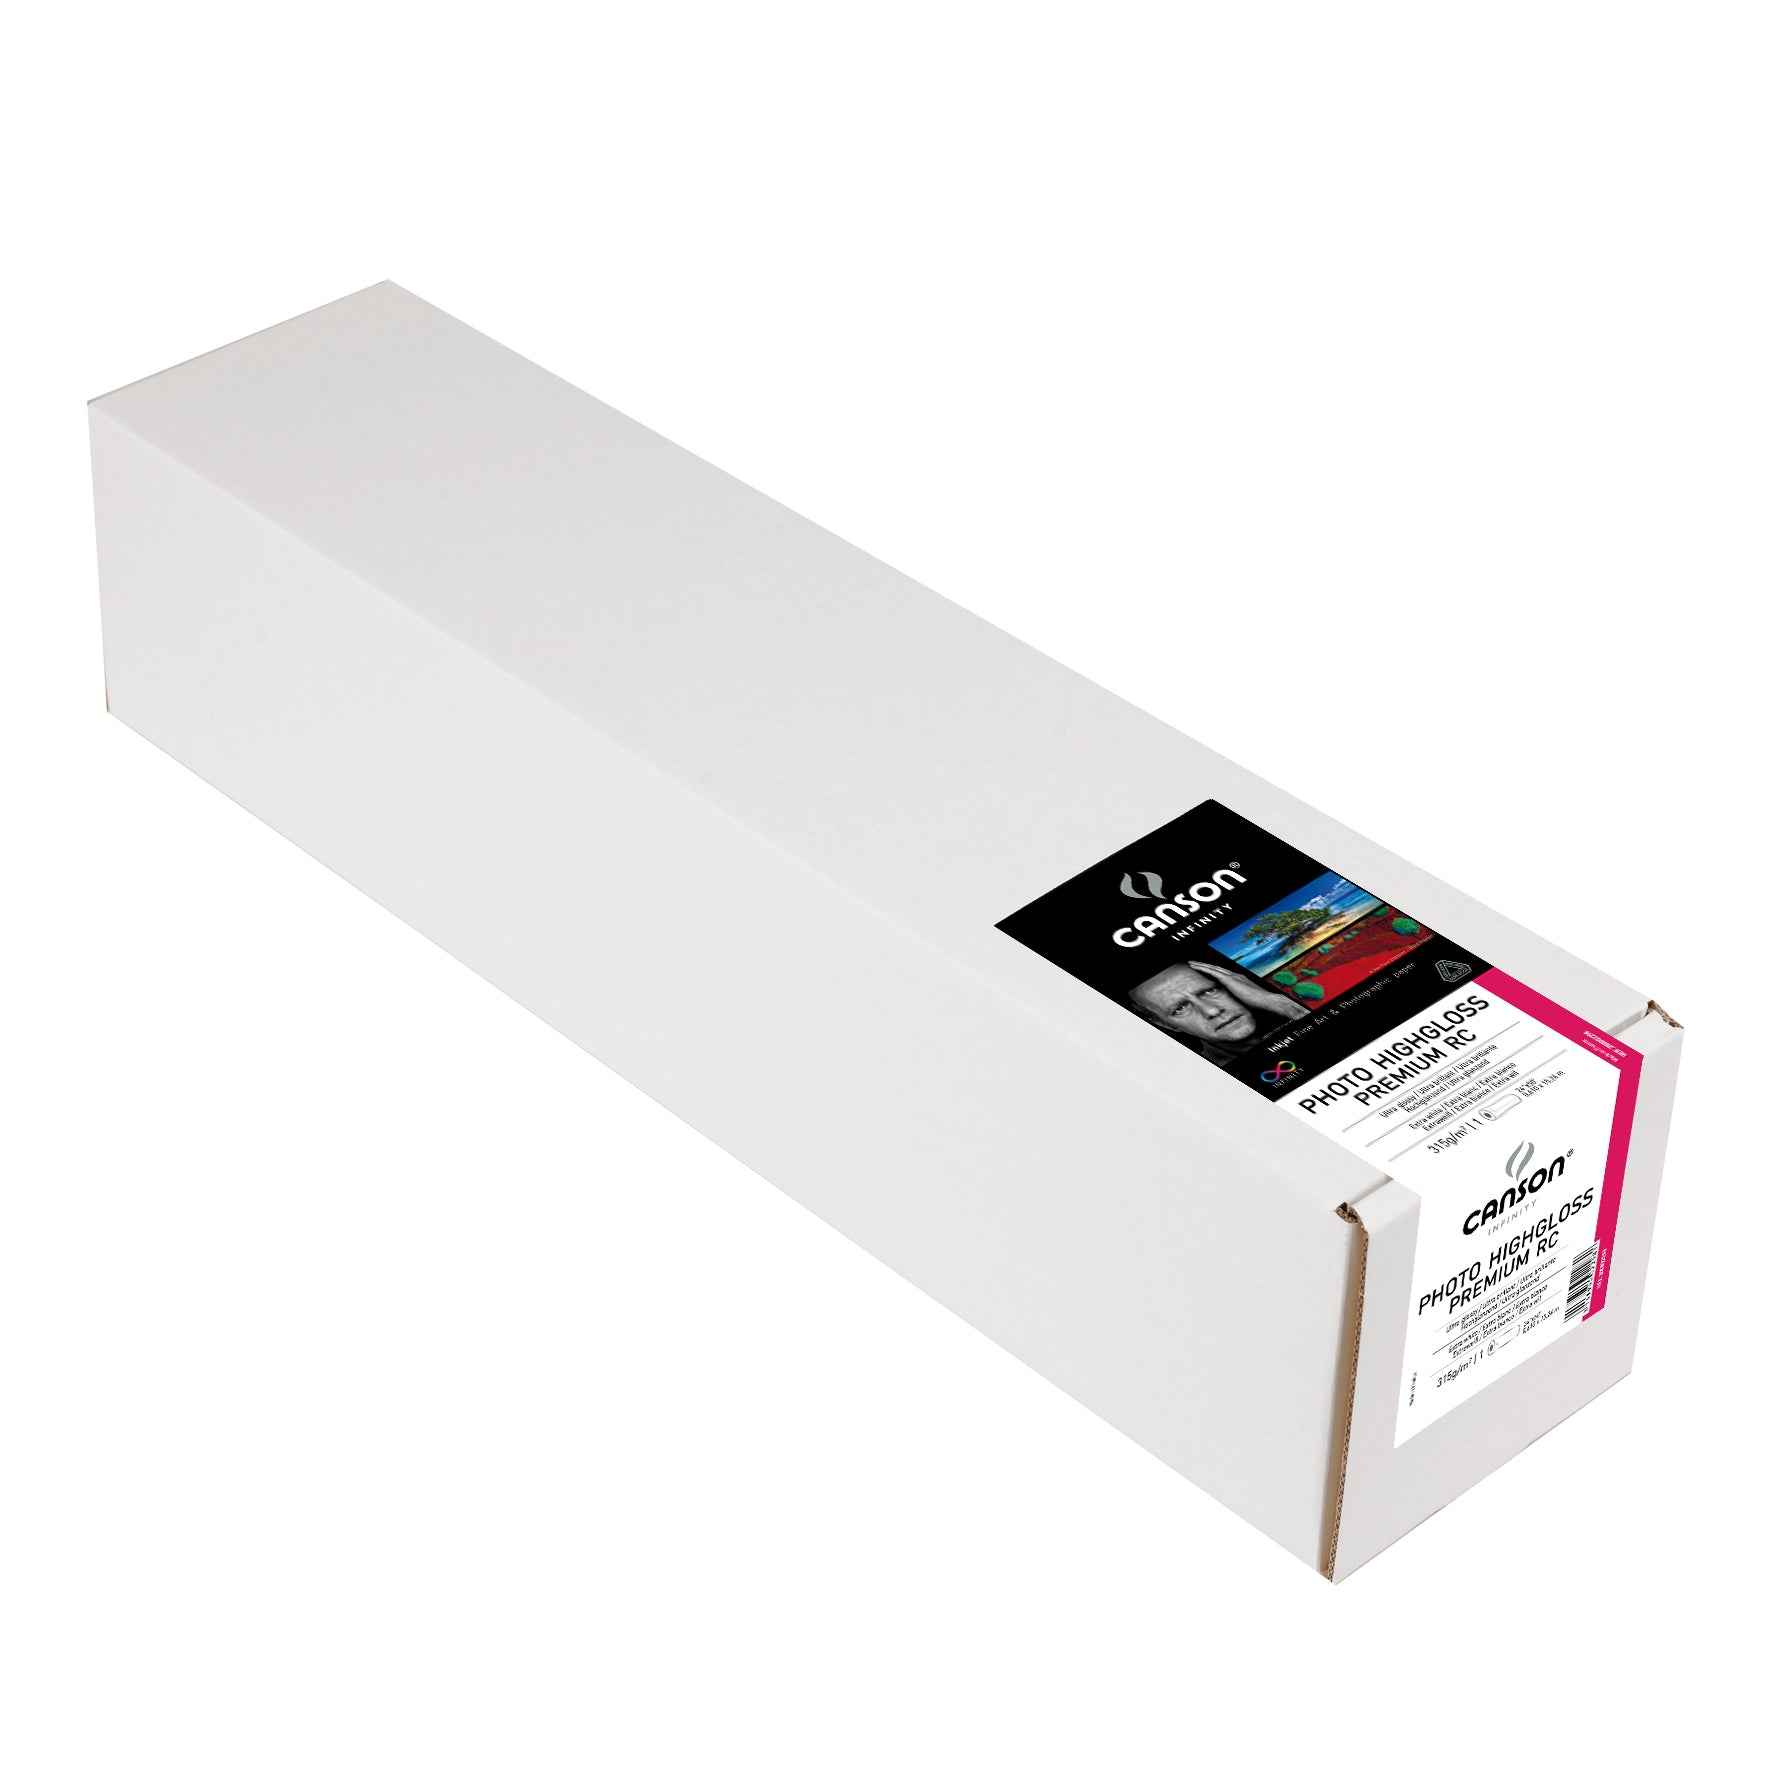 "Canson Infinity Photo Gloss Premium RC - 315gsm - 24""x50' roll"